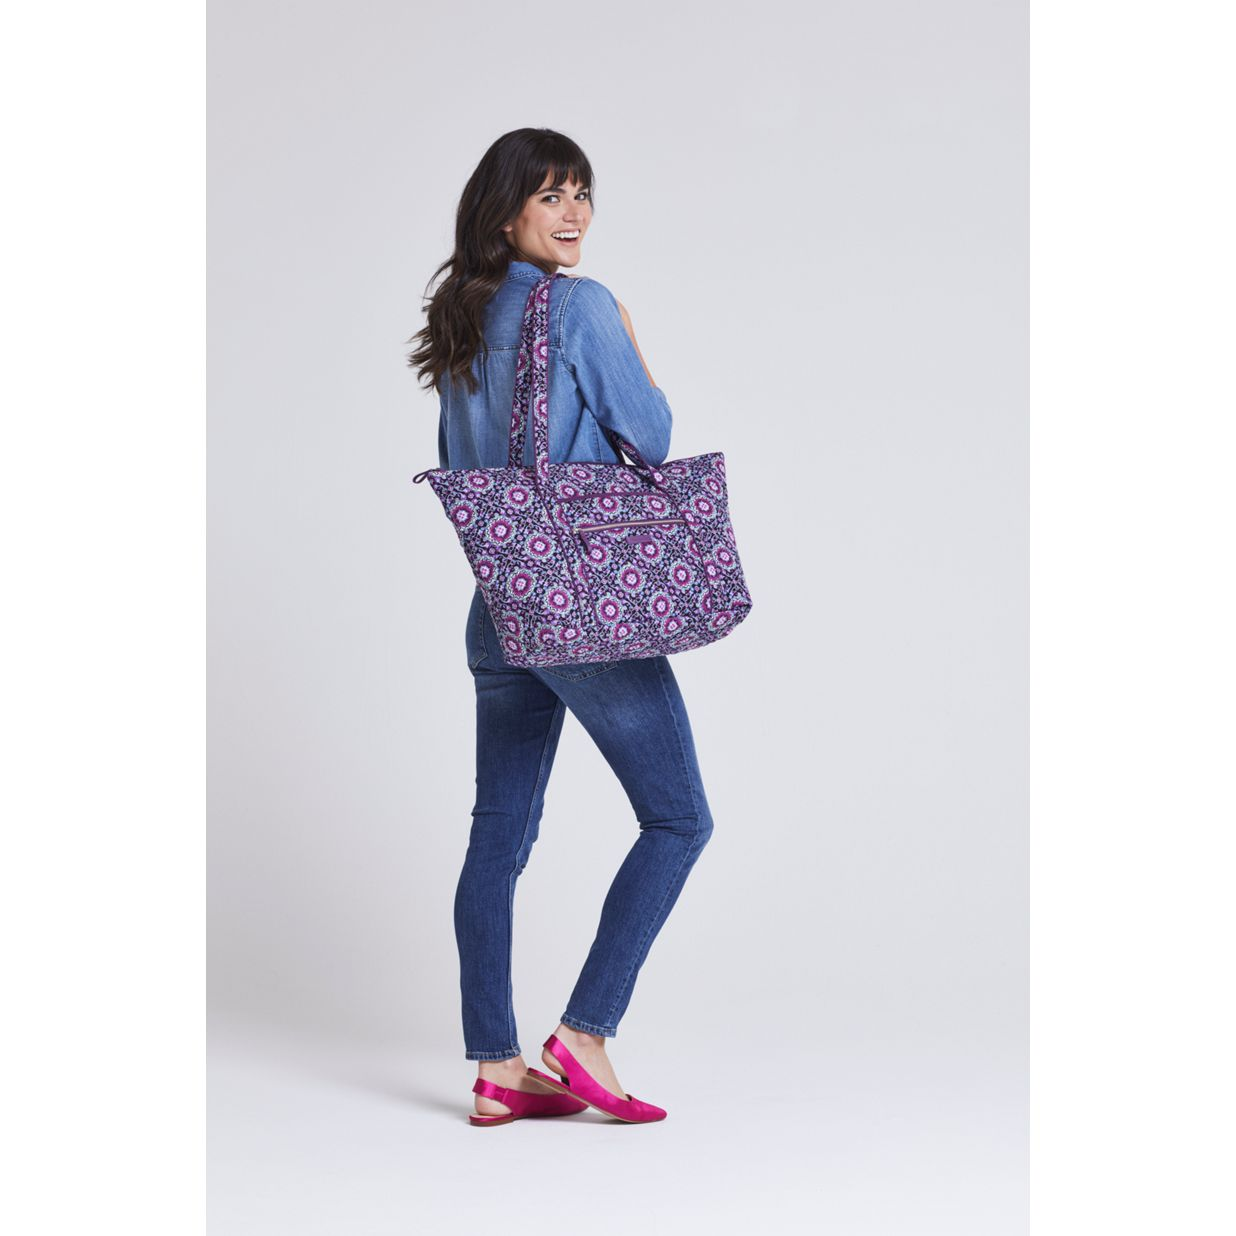 c7942454fe ... Image of Iconic Miller Travel Bag in Pretty Posies ...